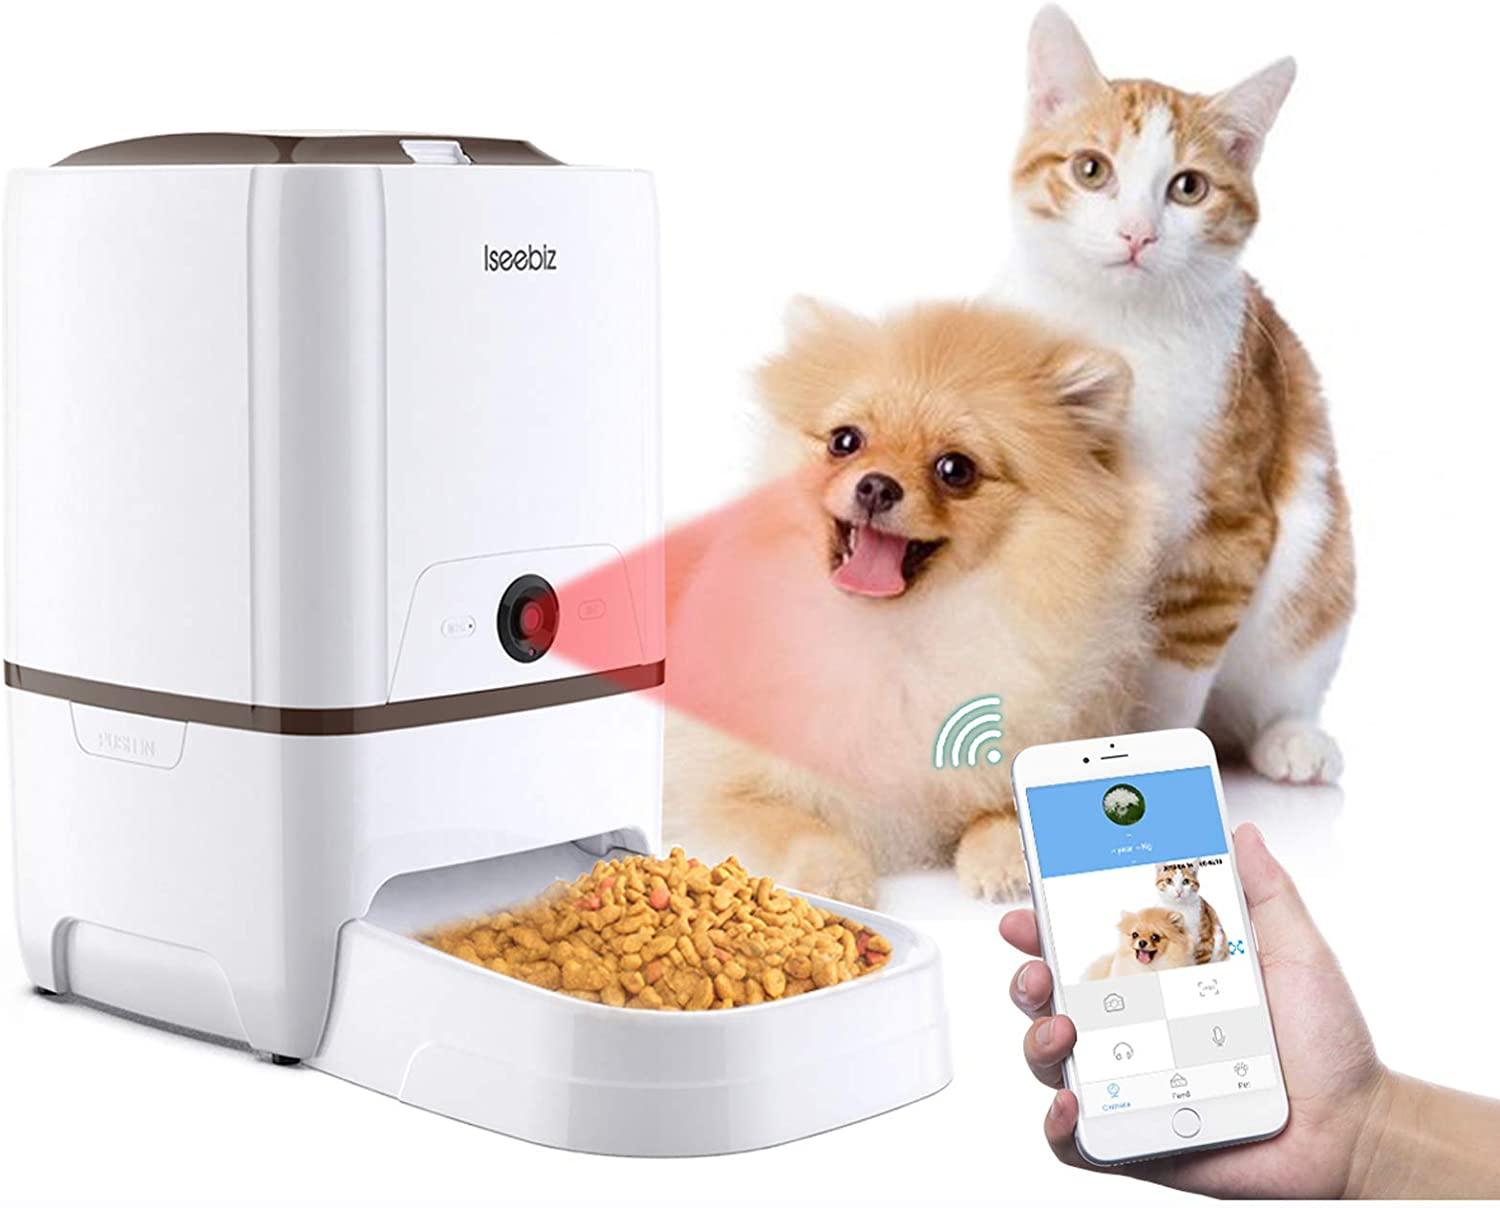 Iseebiz Automatic Pet Feeder with Camera, App Control Smart Feeder Cat Dog Food Dispenser, 2-Way Audio, Voice Remind, Video Record, 6 Meals a Day for Medium Large Cats Dogs, Compatible with Alexa